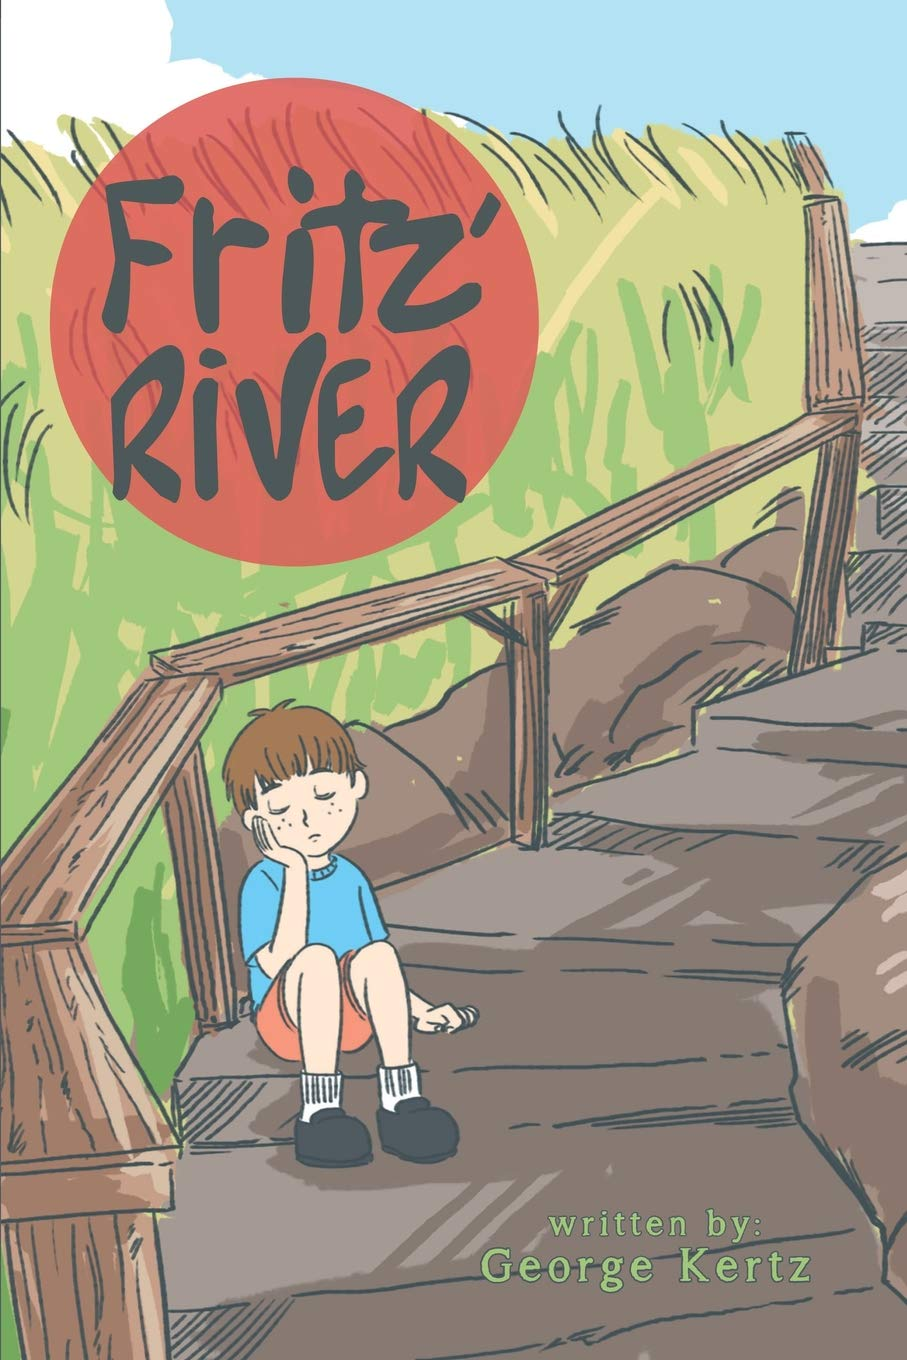 A Vivid Children's Tale about Helping Kids Deal with a Big Move